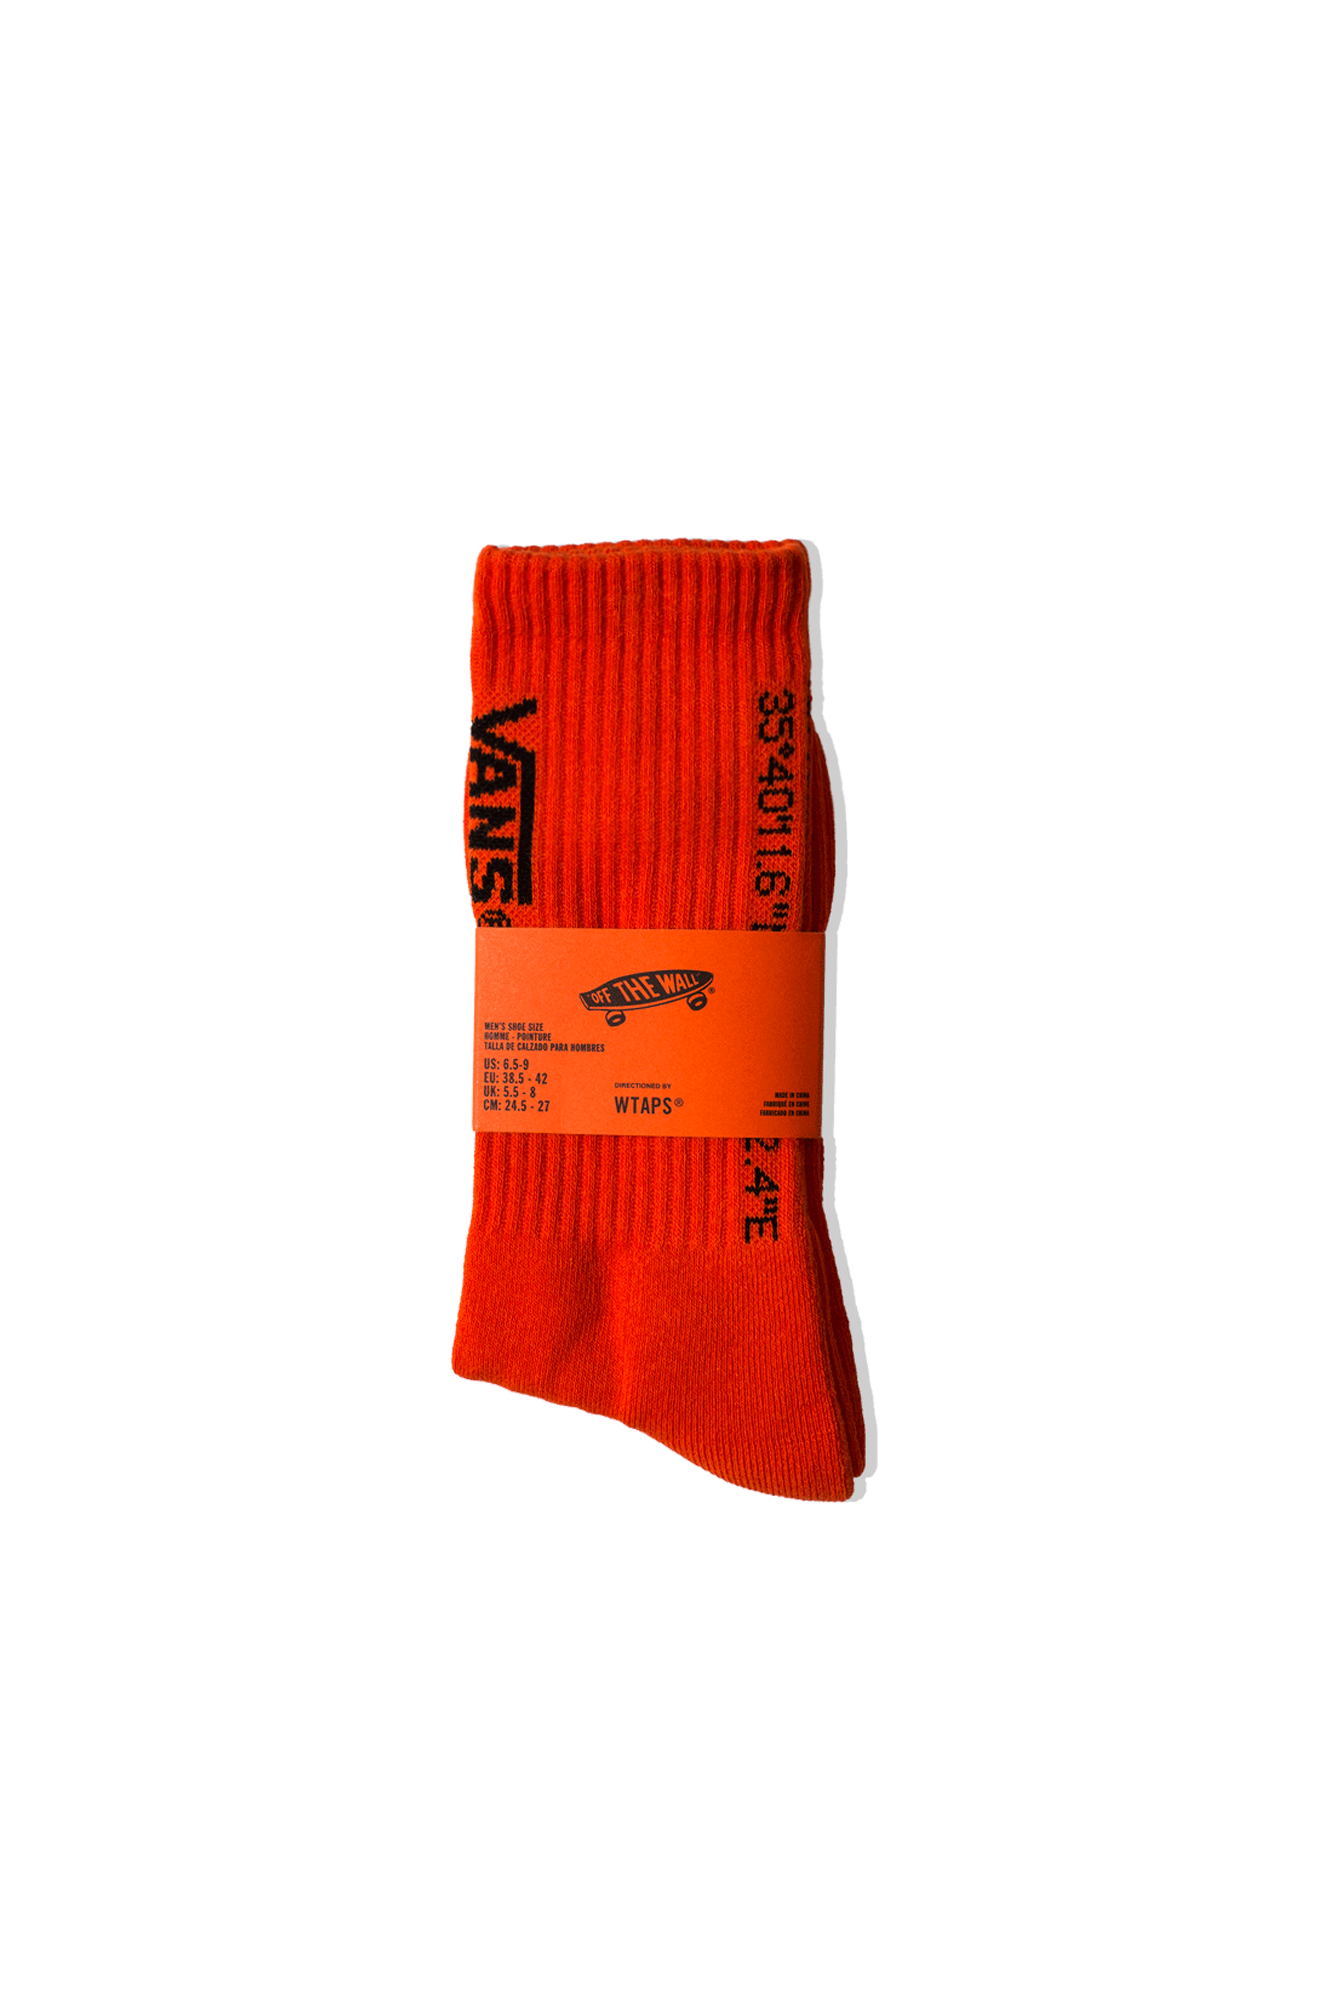 Vans Socks Coordinates Crew Socks x WTAPS Orange VN0A4TRF#ZXT1#C0005#OS - One Block Down